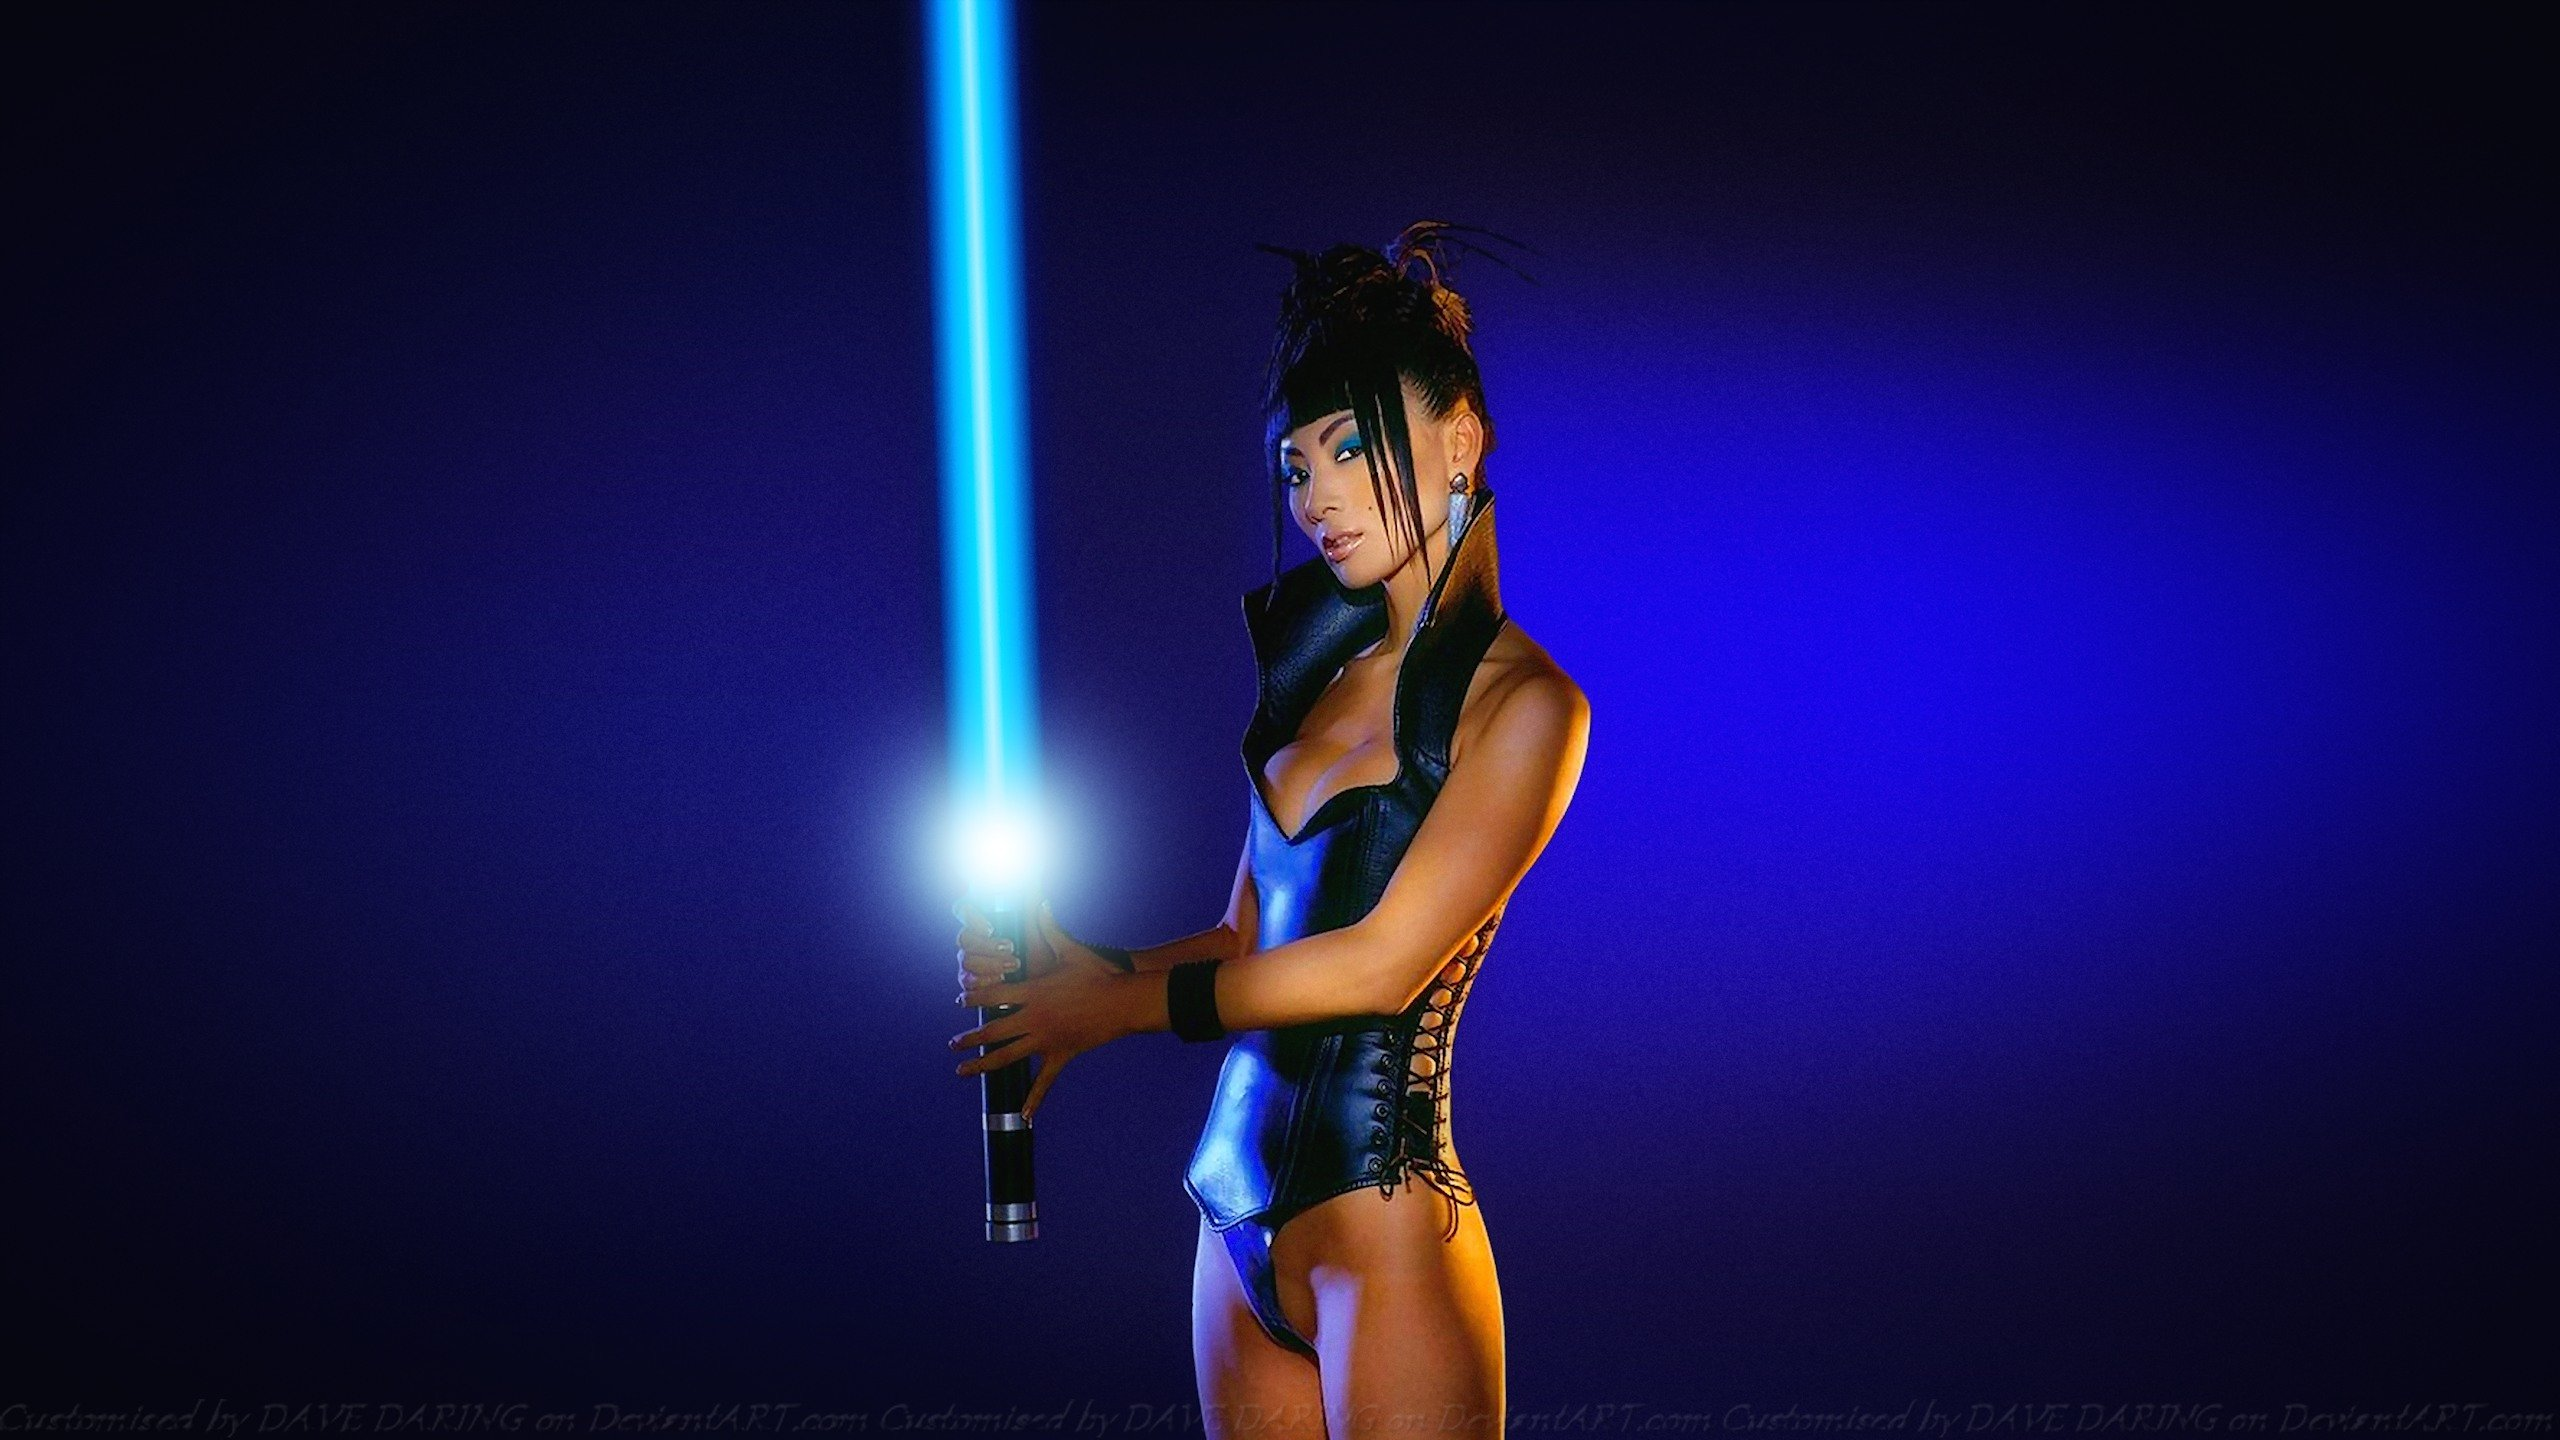 Bai ling star wars nude galleries